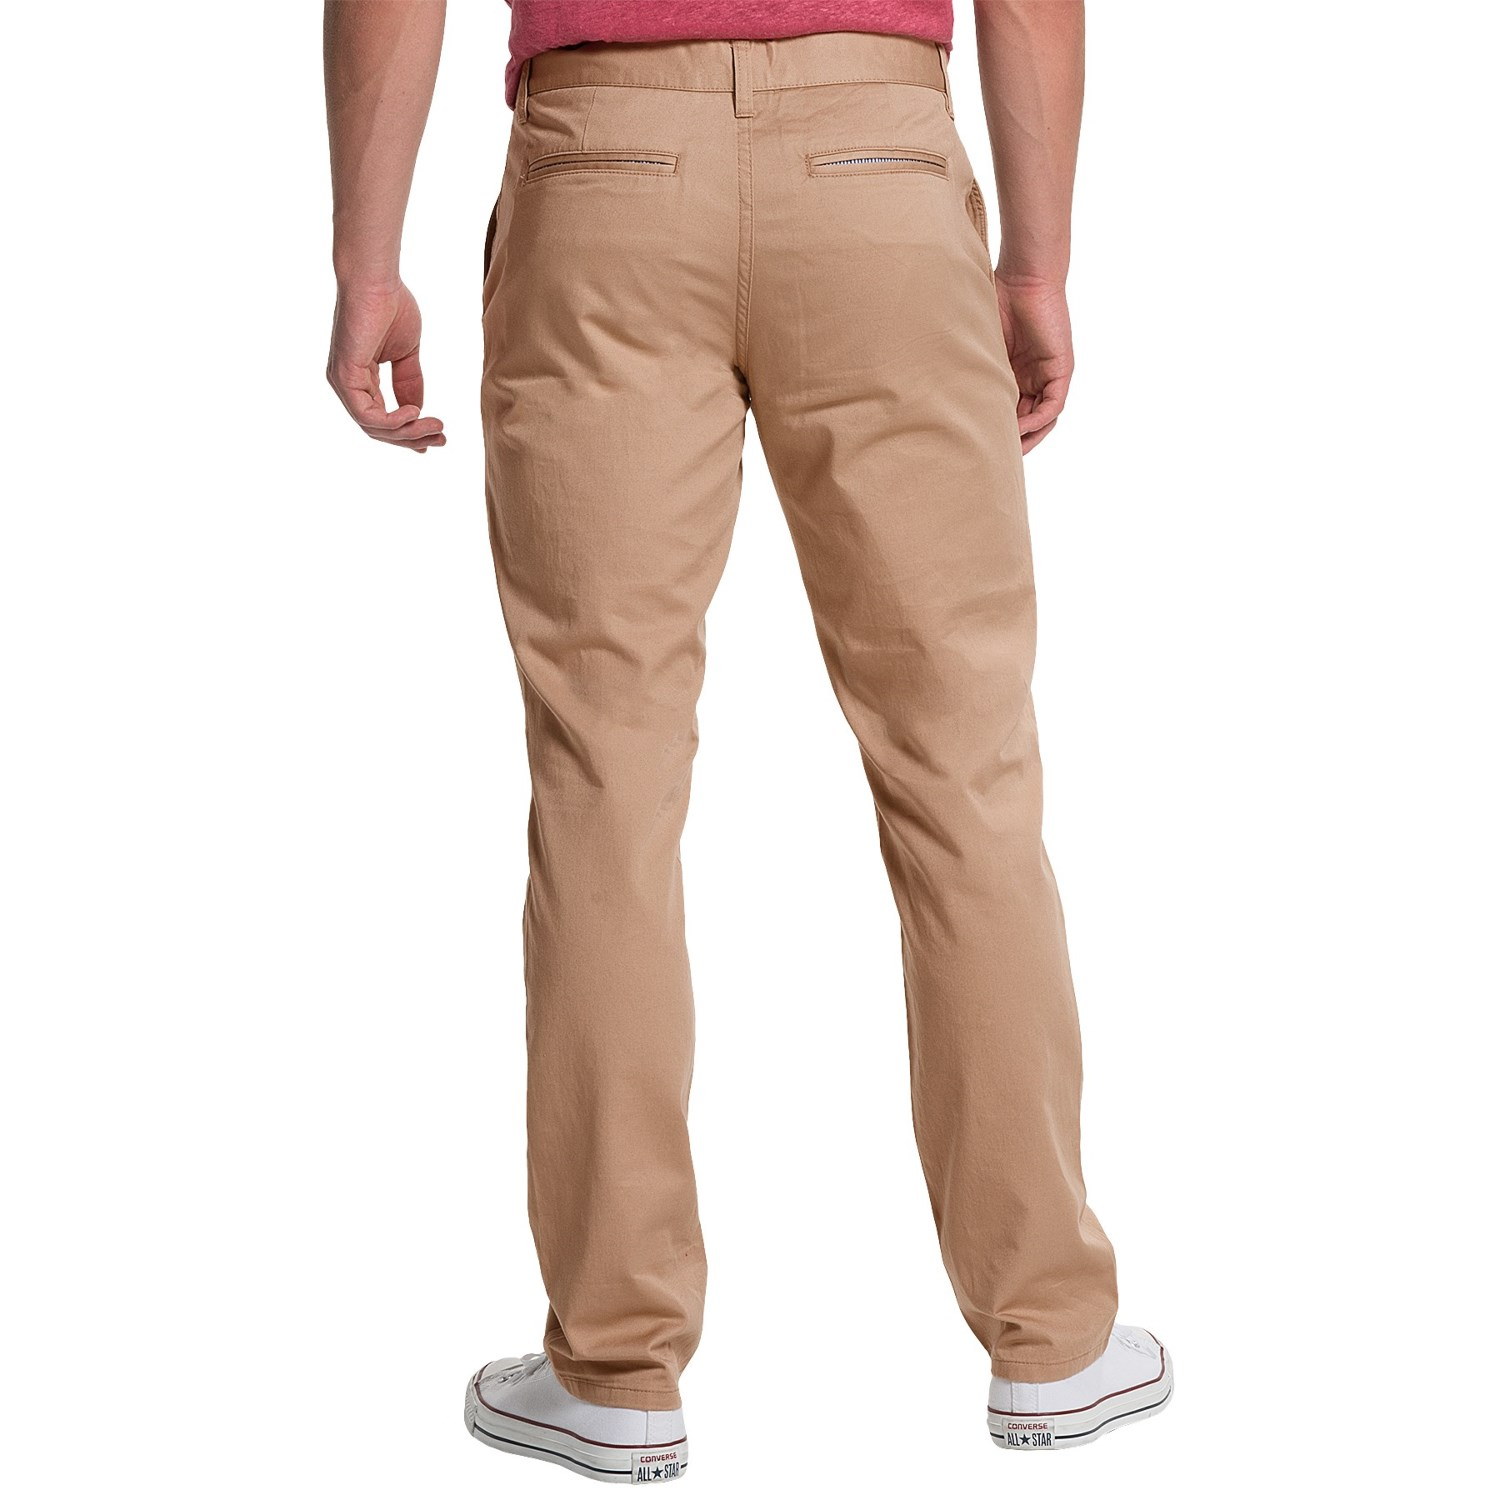 Our menâ s Slim Fit chinos & casual pants includes a wide range of styles and colors, so you can shop your favorites. Pair these versatile menâ s pants with a polo shirt, t shirt, or dress shirt for a stylish look. Whether youâ re going to the boardwalk or an evening party, these pants transition from day to .